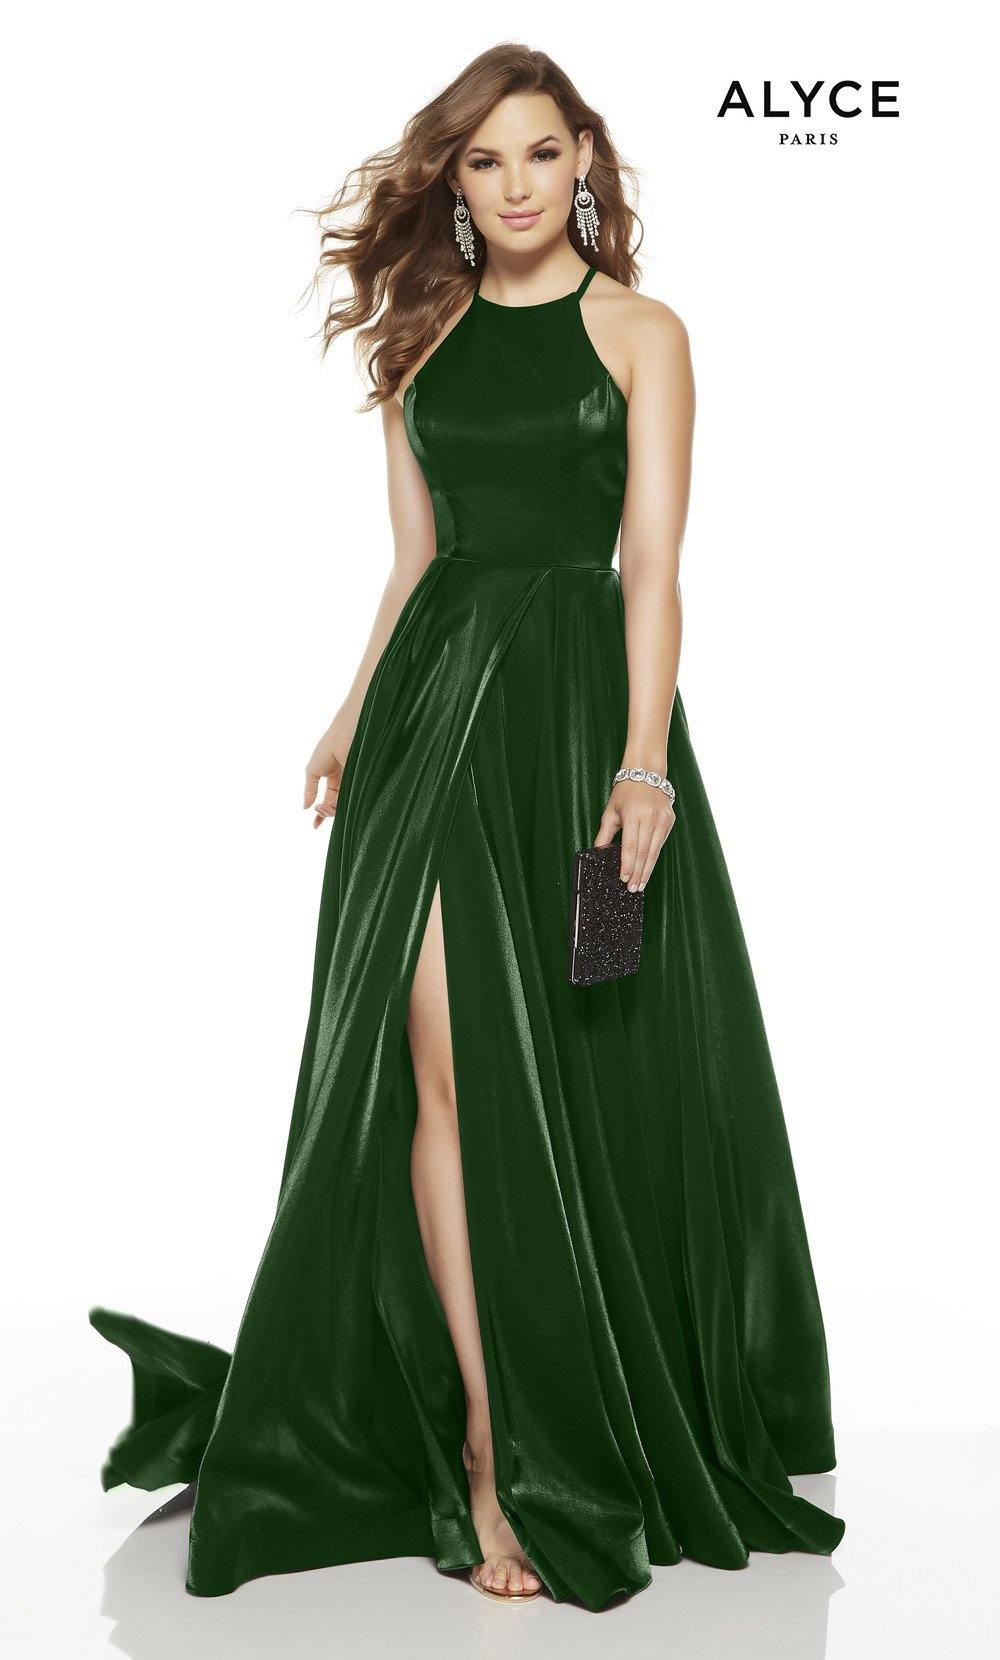 Emerald red-carpet dress with a halter neckline and a slit